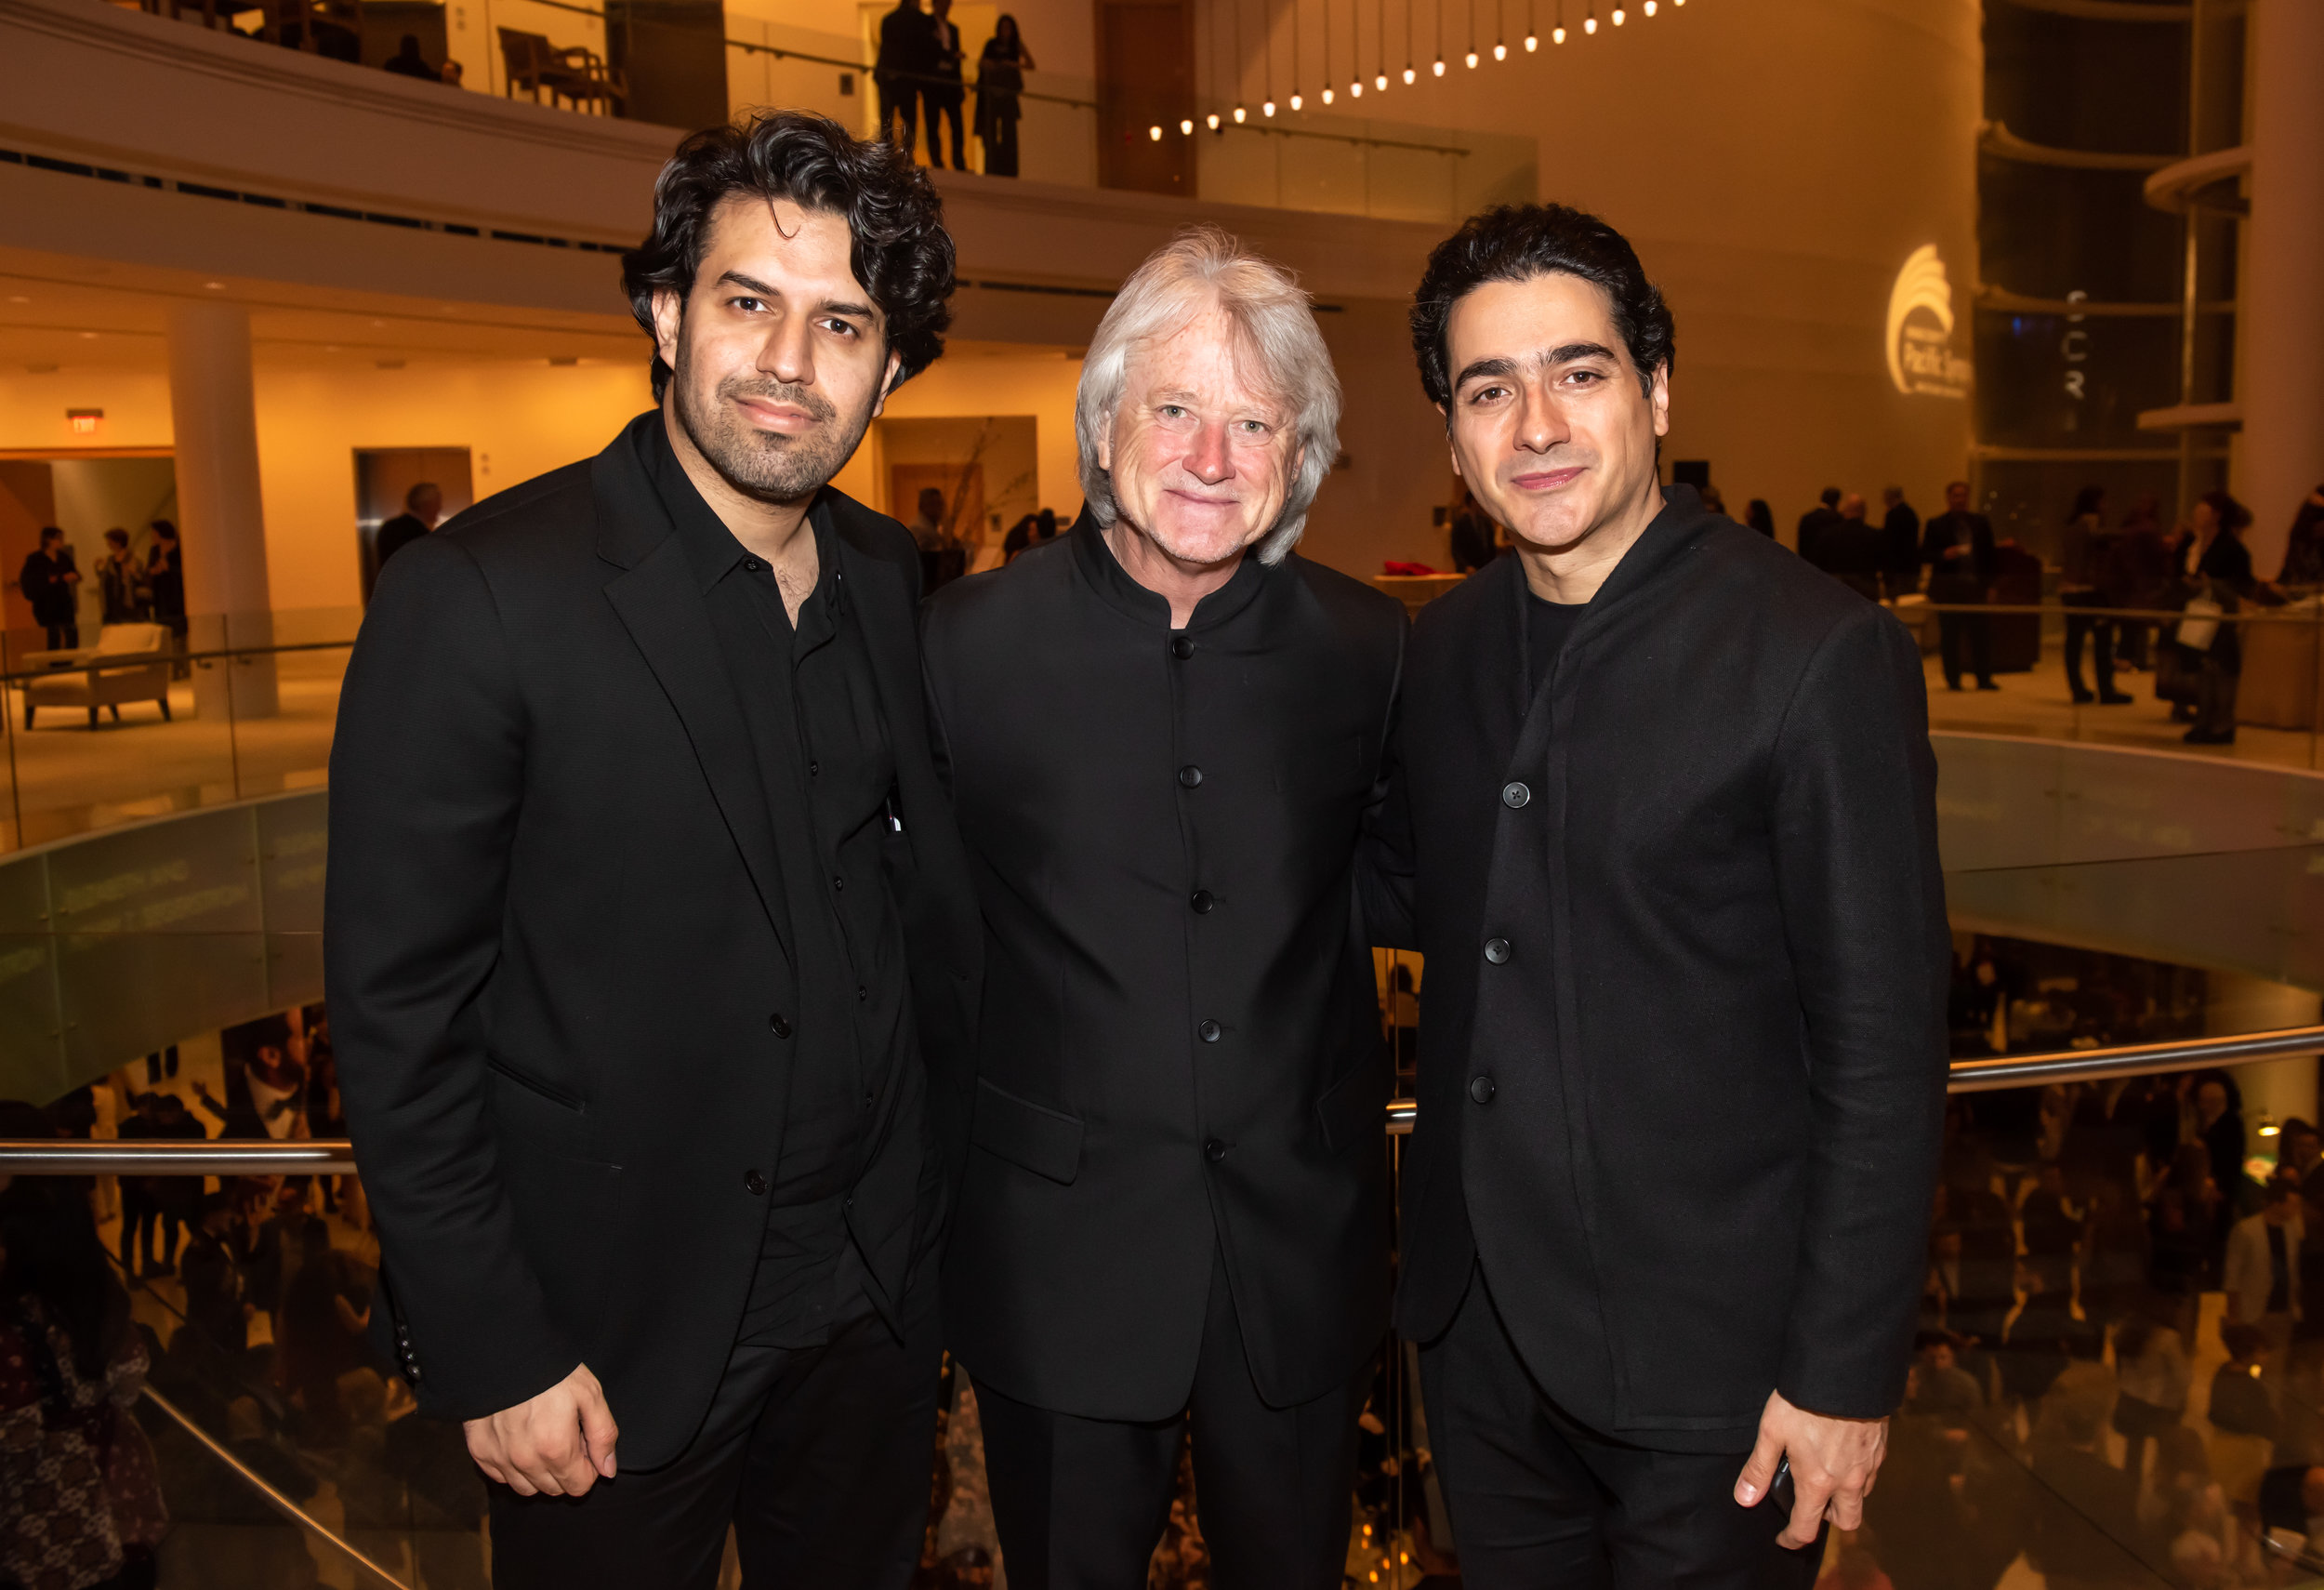 (left to right) Sohrab Pournazeri, Virtuoso of the Tanbour and the Kamancheh, is a sensational phenomenon of modern Iranian music, Carl St. Clair, Music Director of the Pacific Symphony, and Homayoun Shajarian, Persian classical music and Persian classical crossover Vocalist.